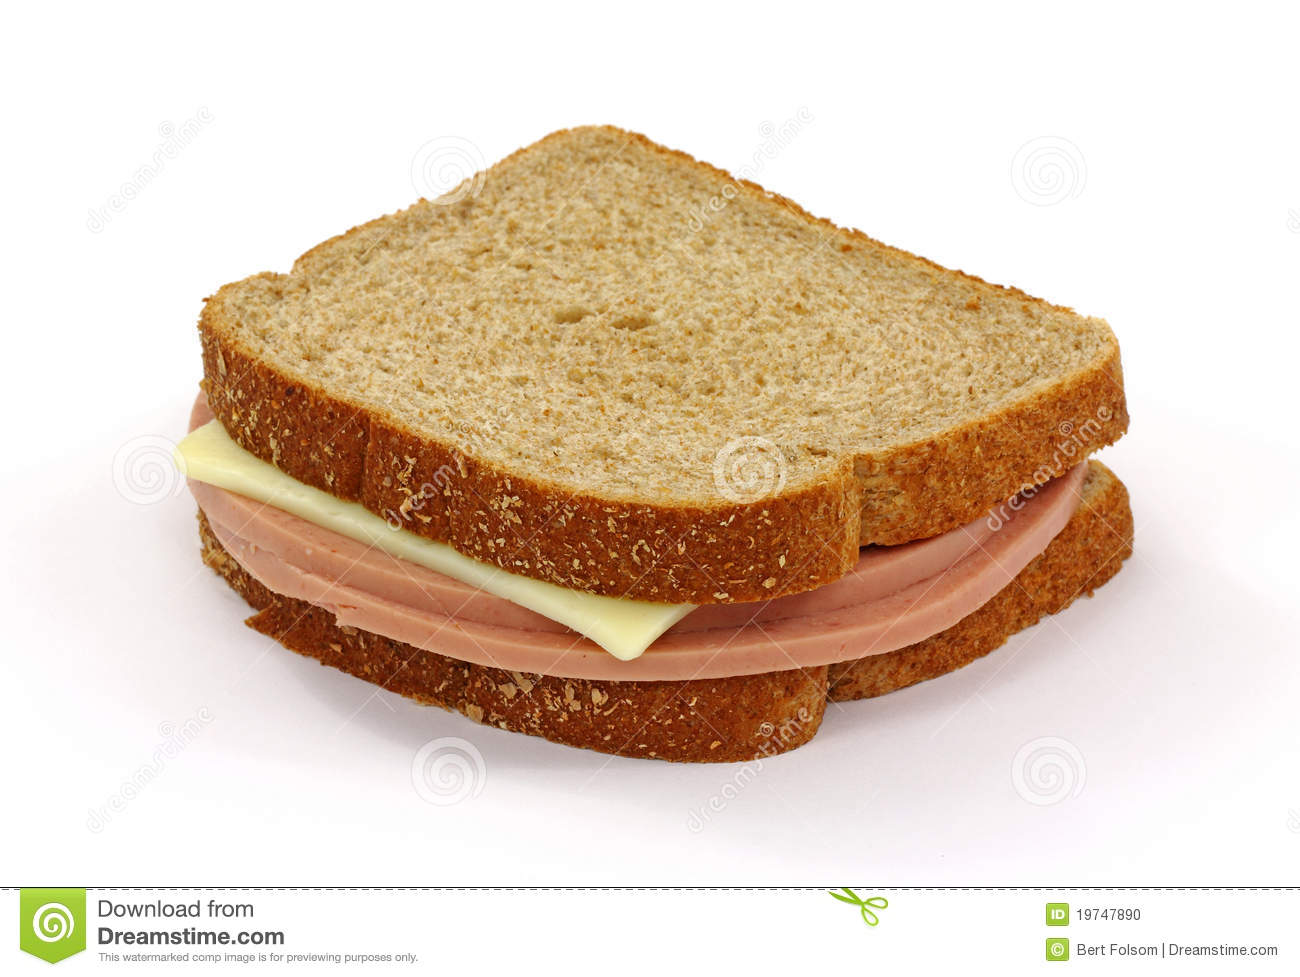 Stock Photo Bologna Cheese Sandwich White Image19747890 together with 2014 02 02 archive additionally Snack Packs as well 10452294 furthermore What Are The Best Brand Of Hot Dogs Taste Test. on oscar mayer turkey